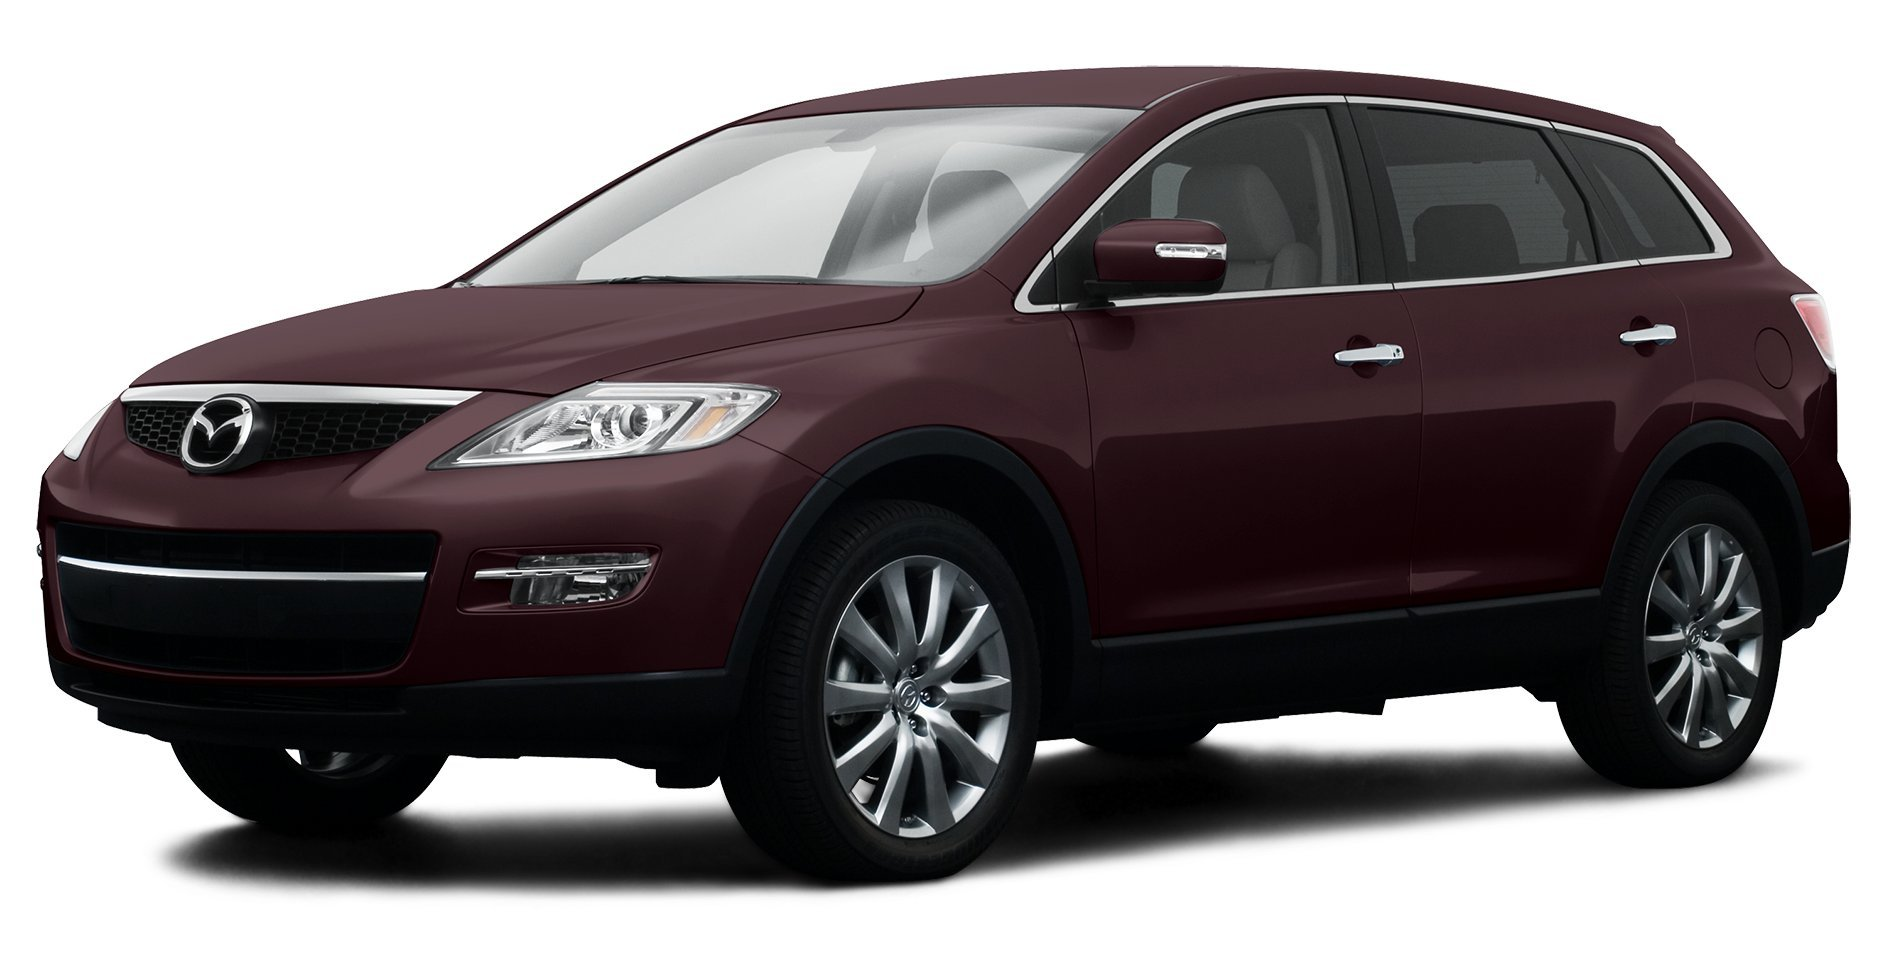 mazda cx9 2007 recall wiring harness connection cx. Black Bedroom Furniture Sets. Home Design Ideas